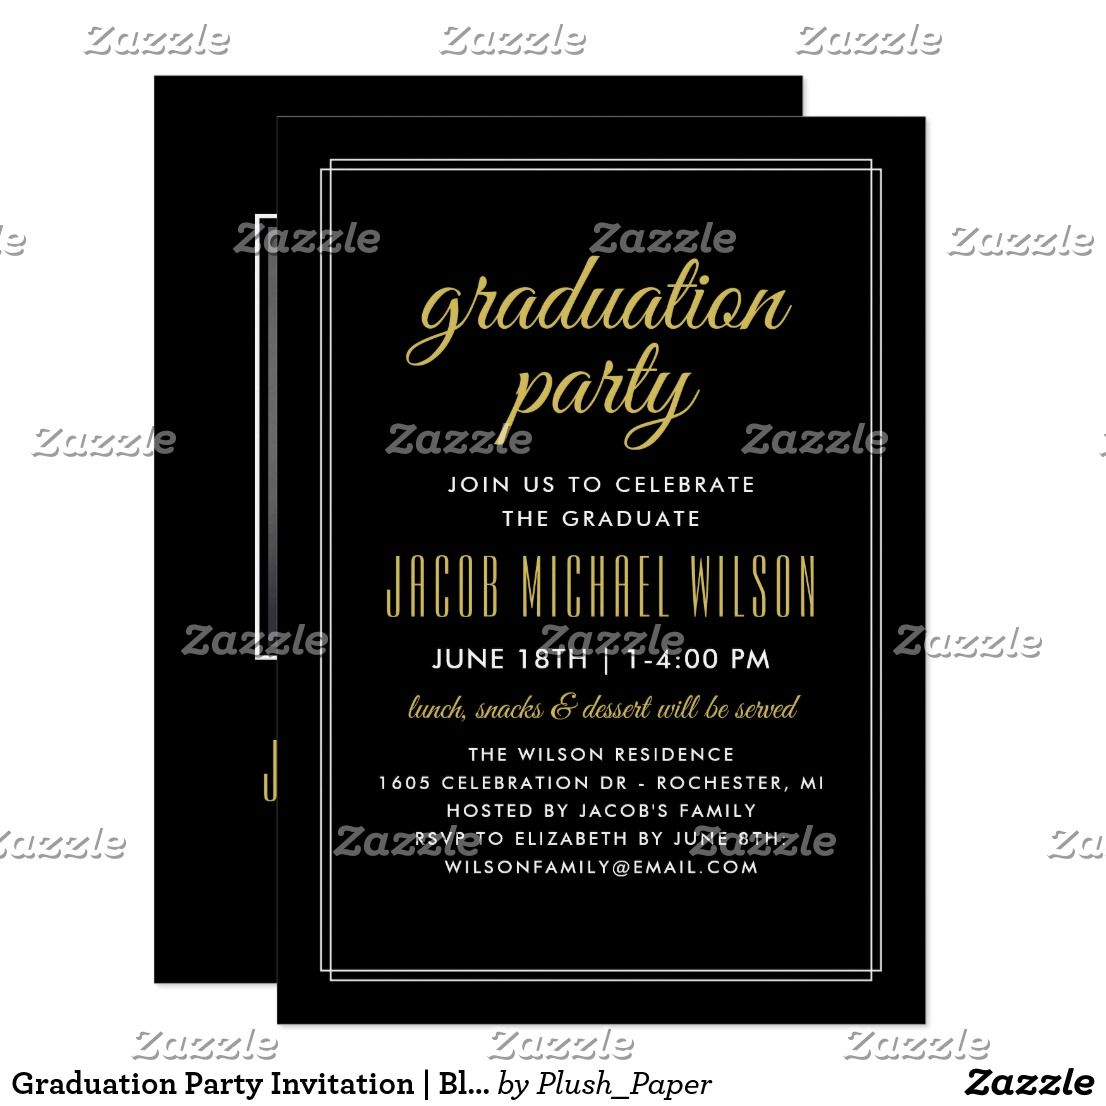 Graduation Party Invitation | Black and Gold | Party invitations